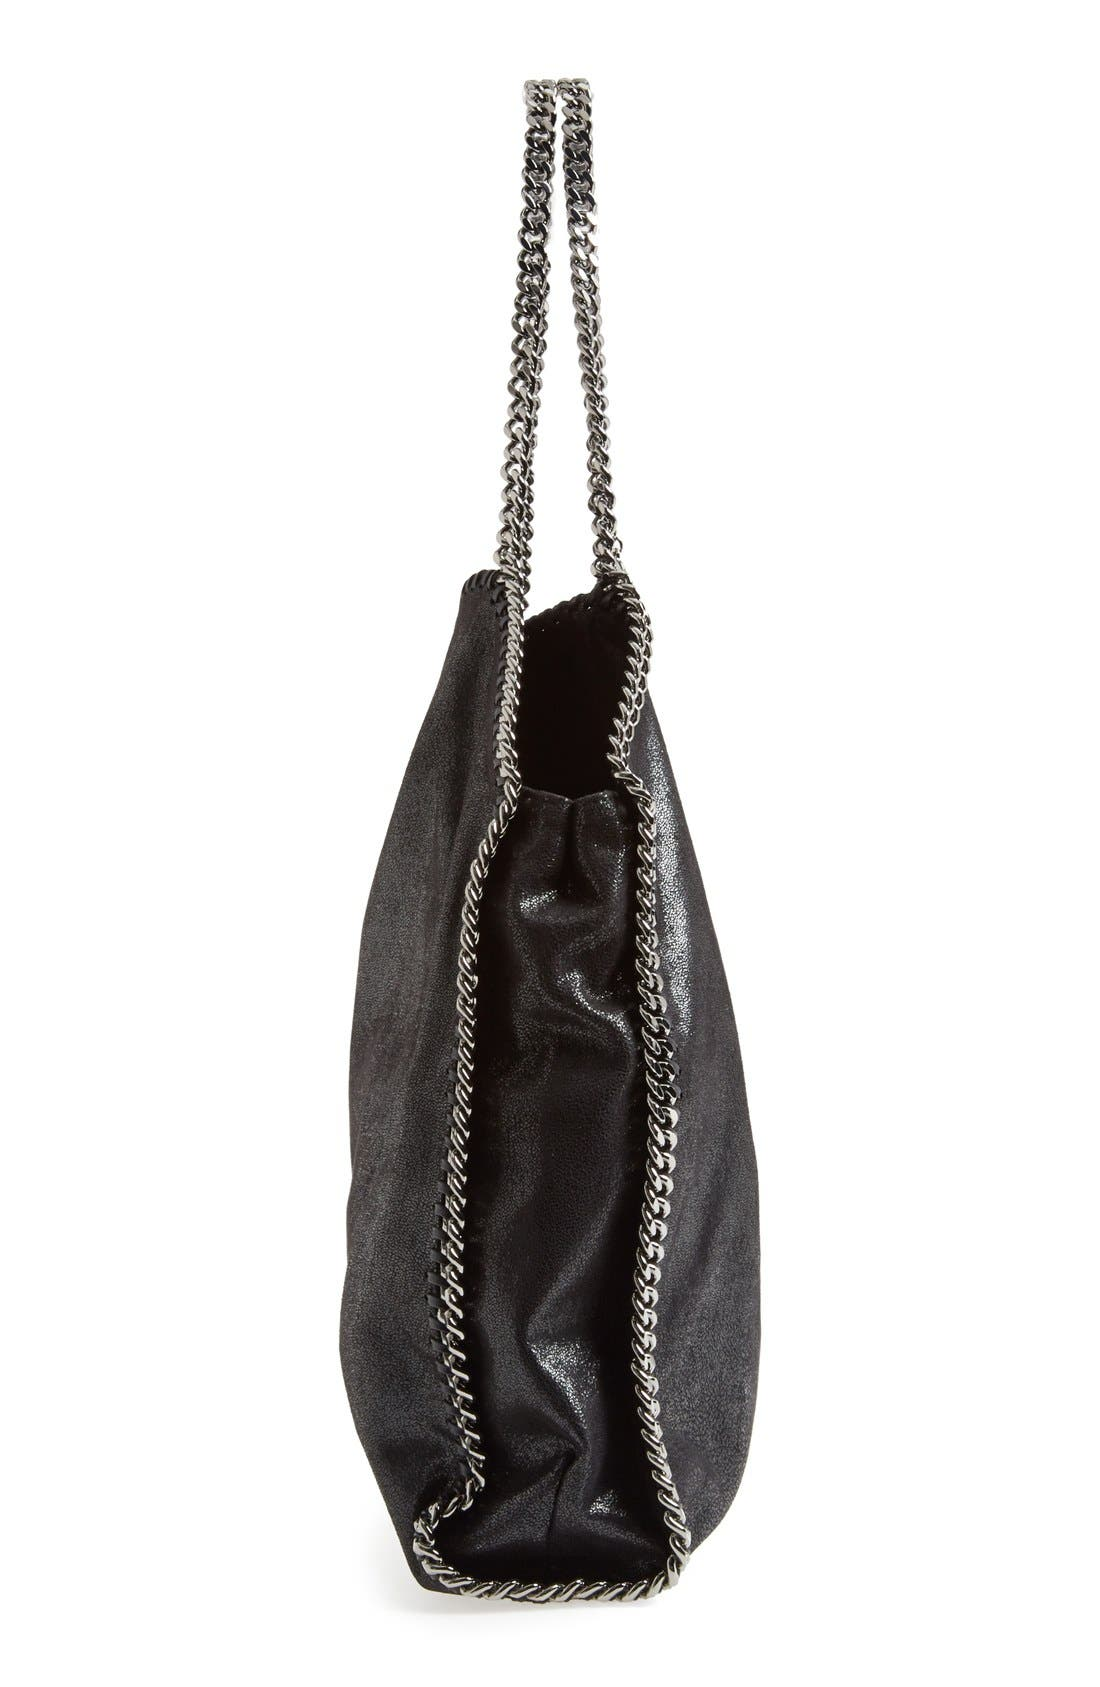 STELLA MCCARTNEY,                             'Large Falabella - Shaggy Deer' Faux Leather Tote,                             Alternate thumbnail 5, color,                             001